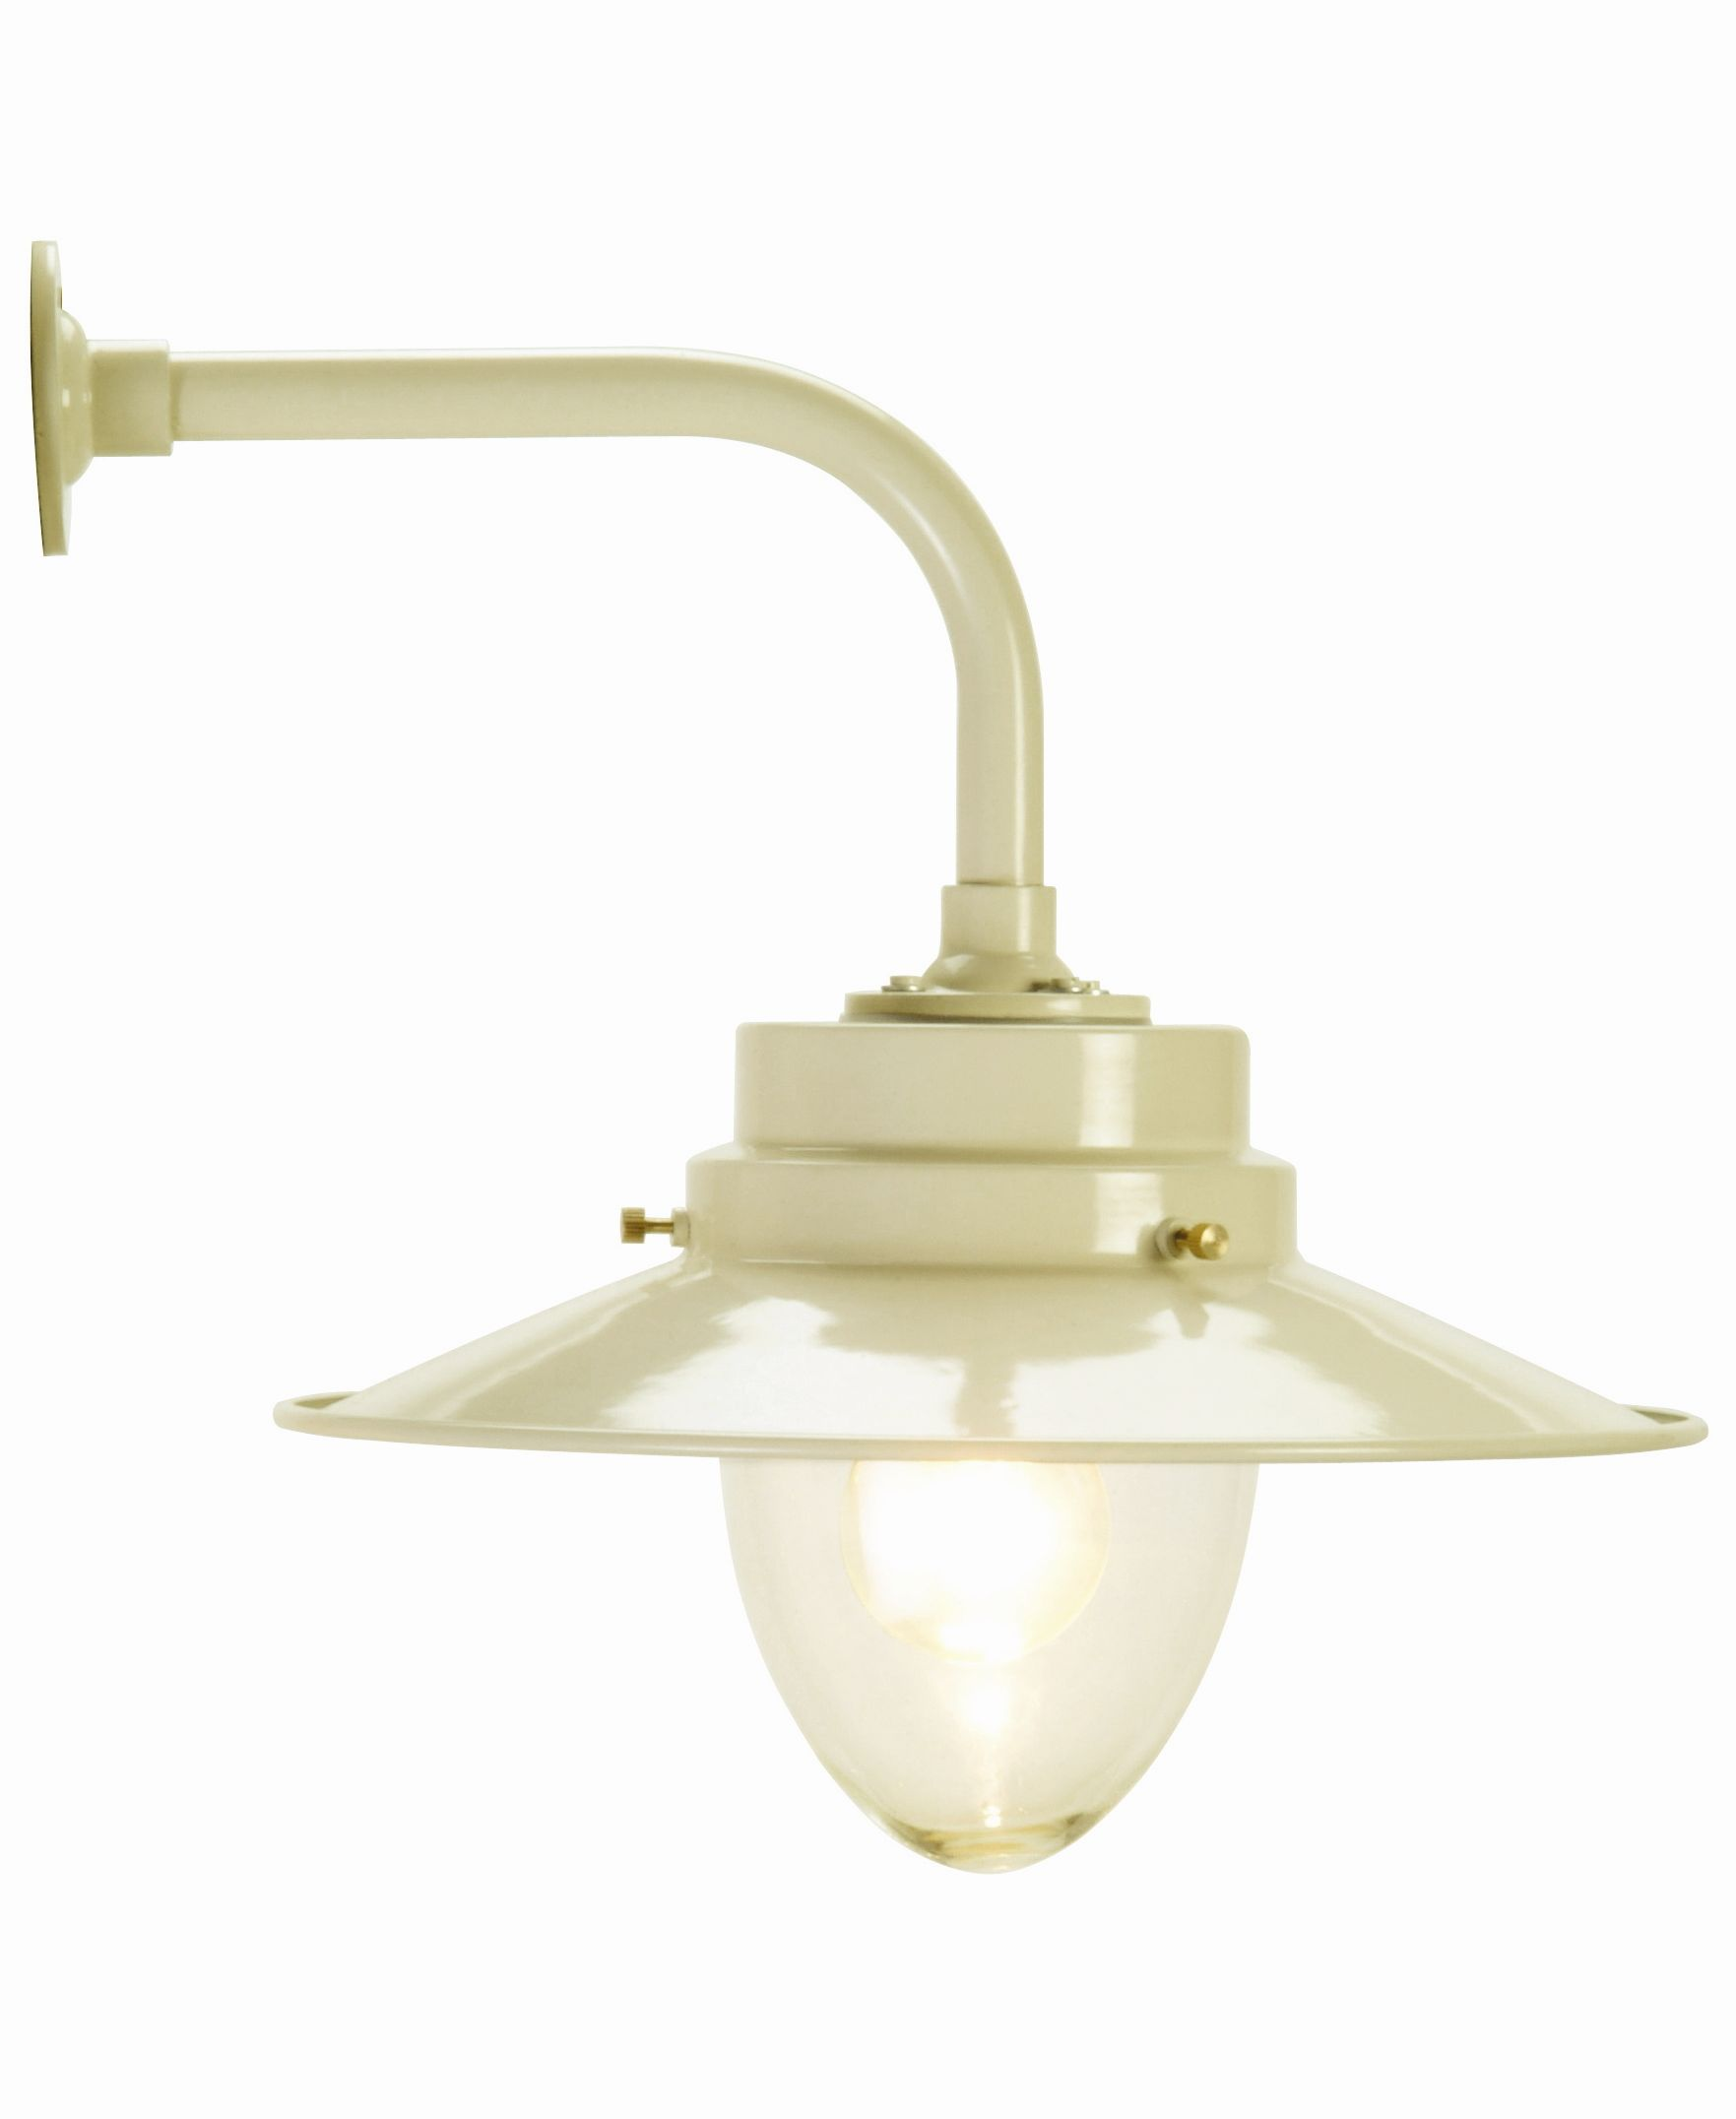 Ceiling Lights In Belfast : Ceiling light with round glass